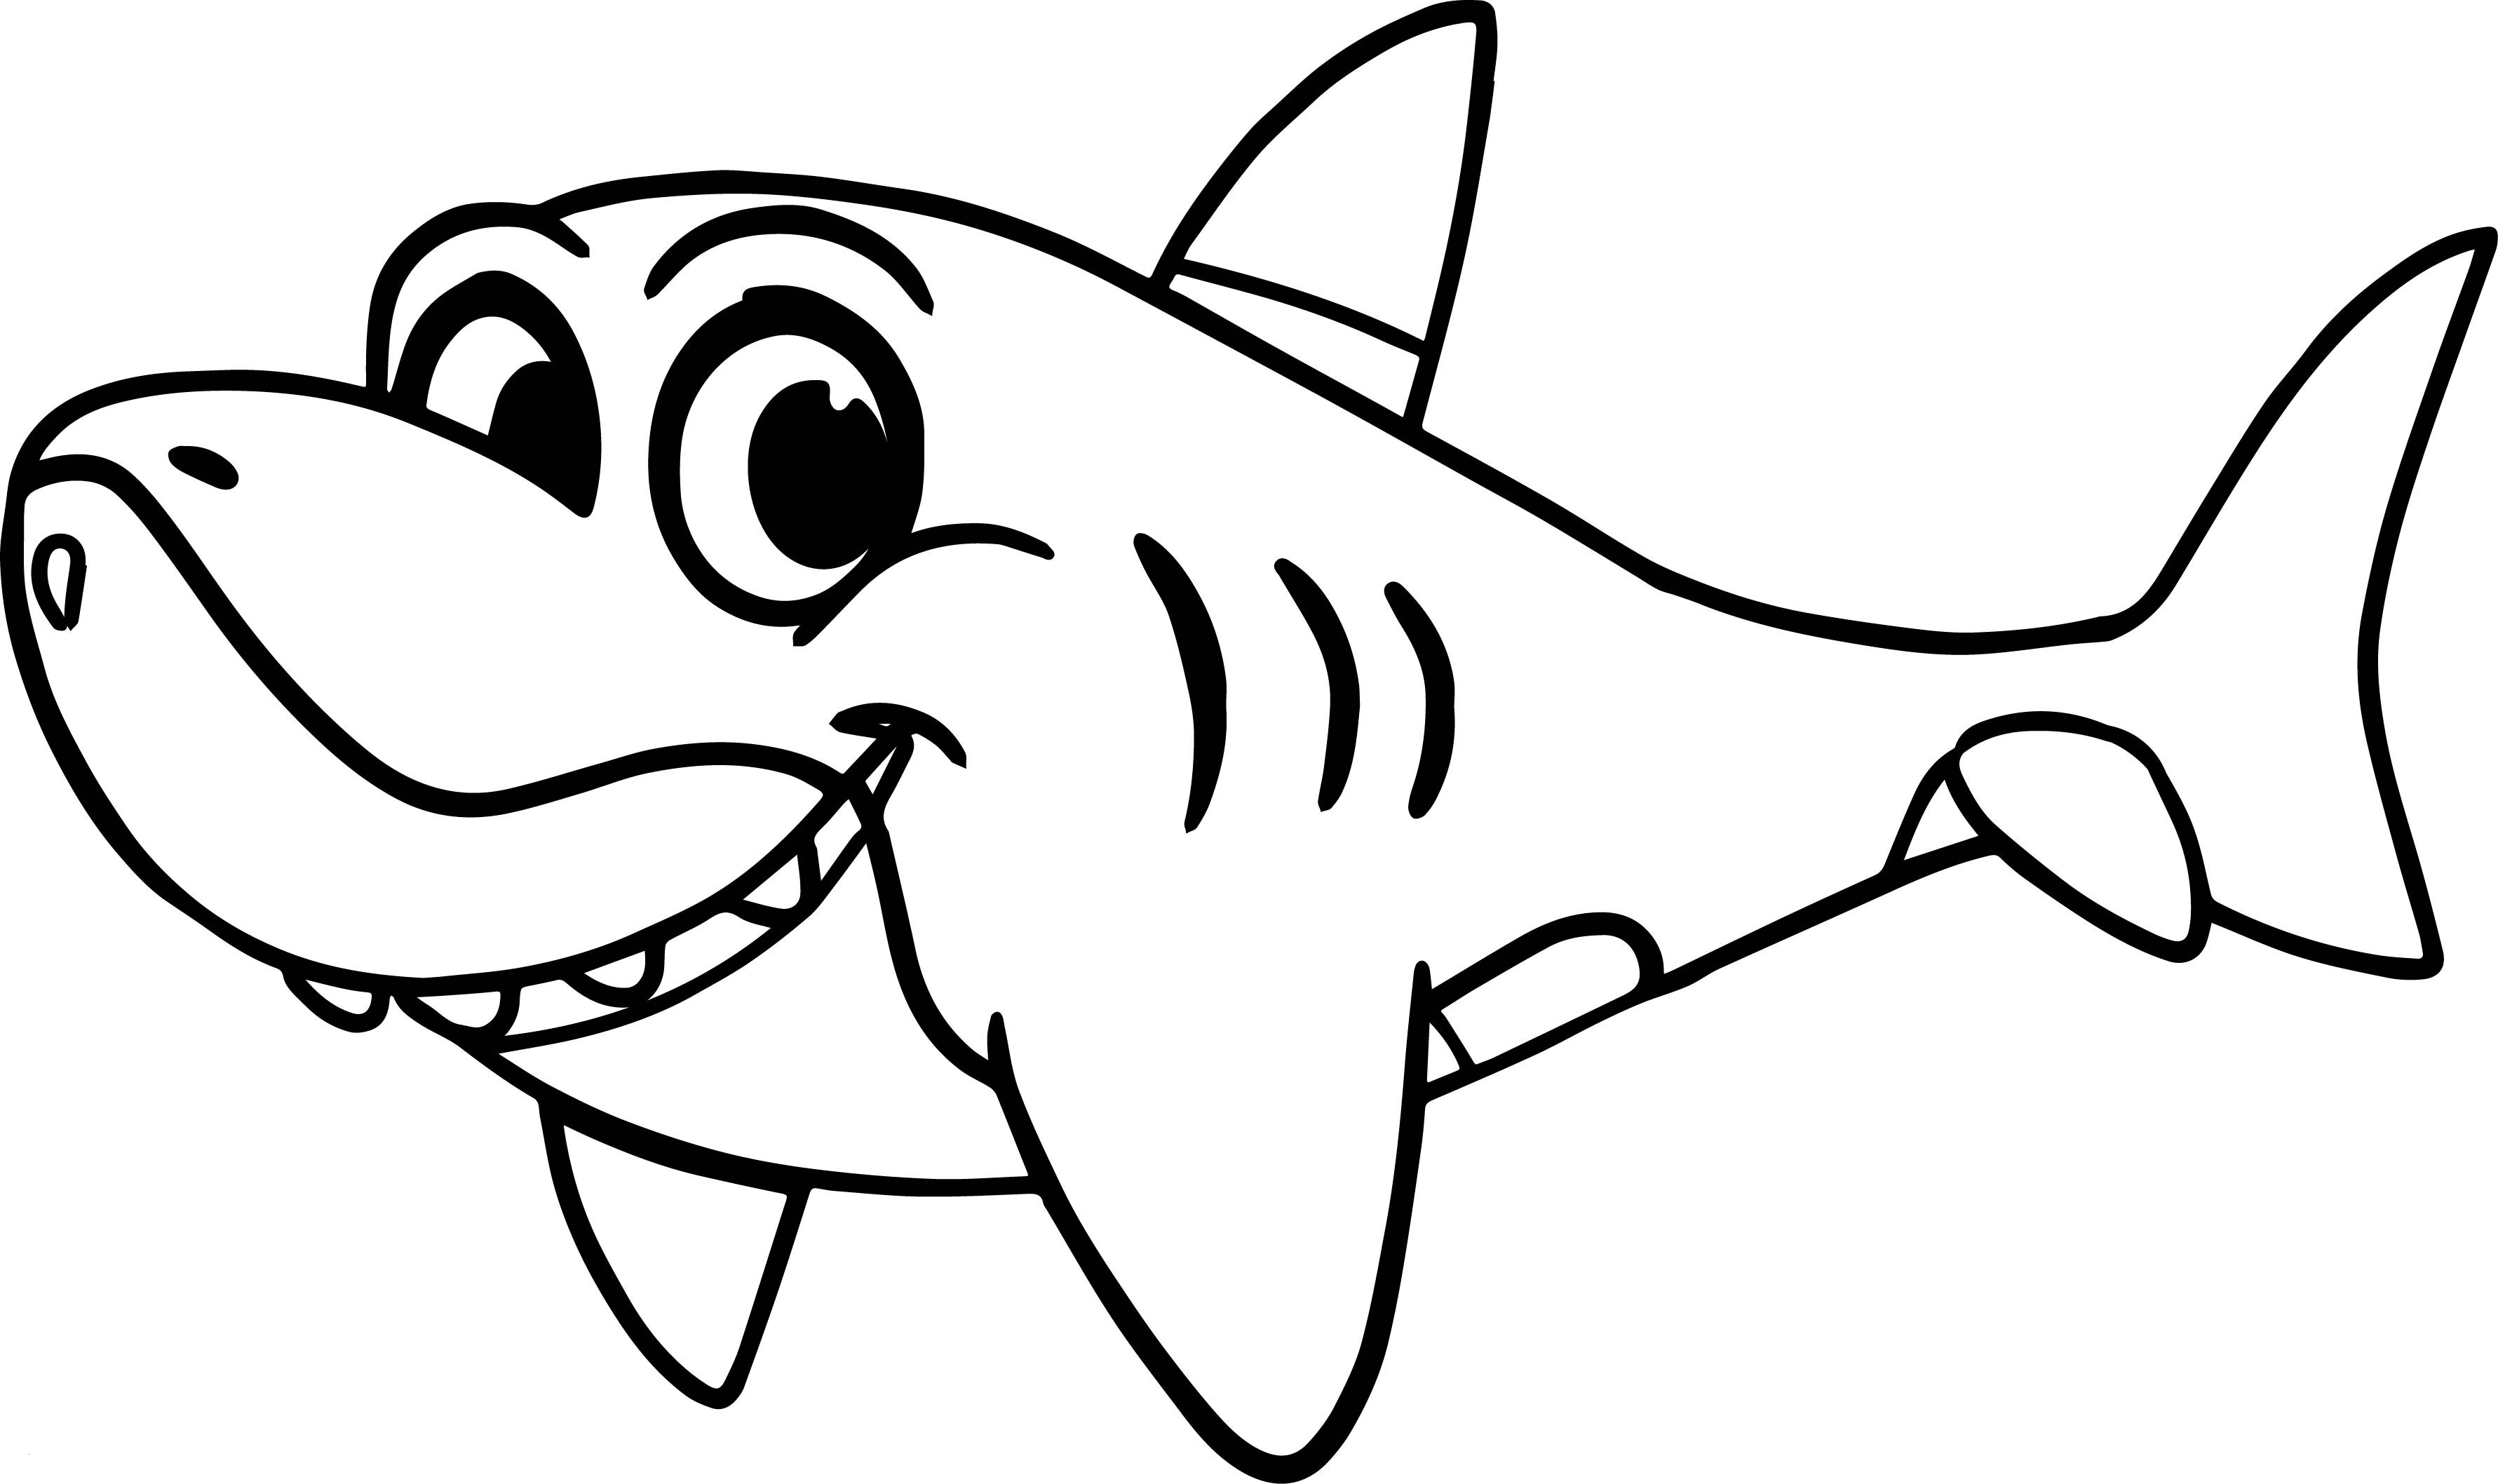 Baby shark clipart colouring pictures on Cliparts Pub 2020!